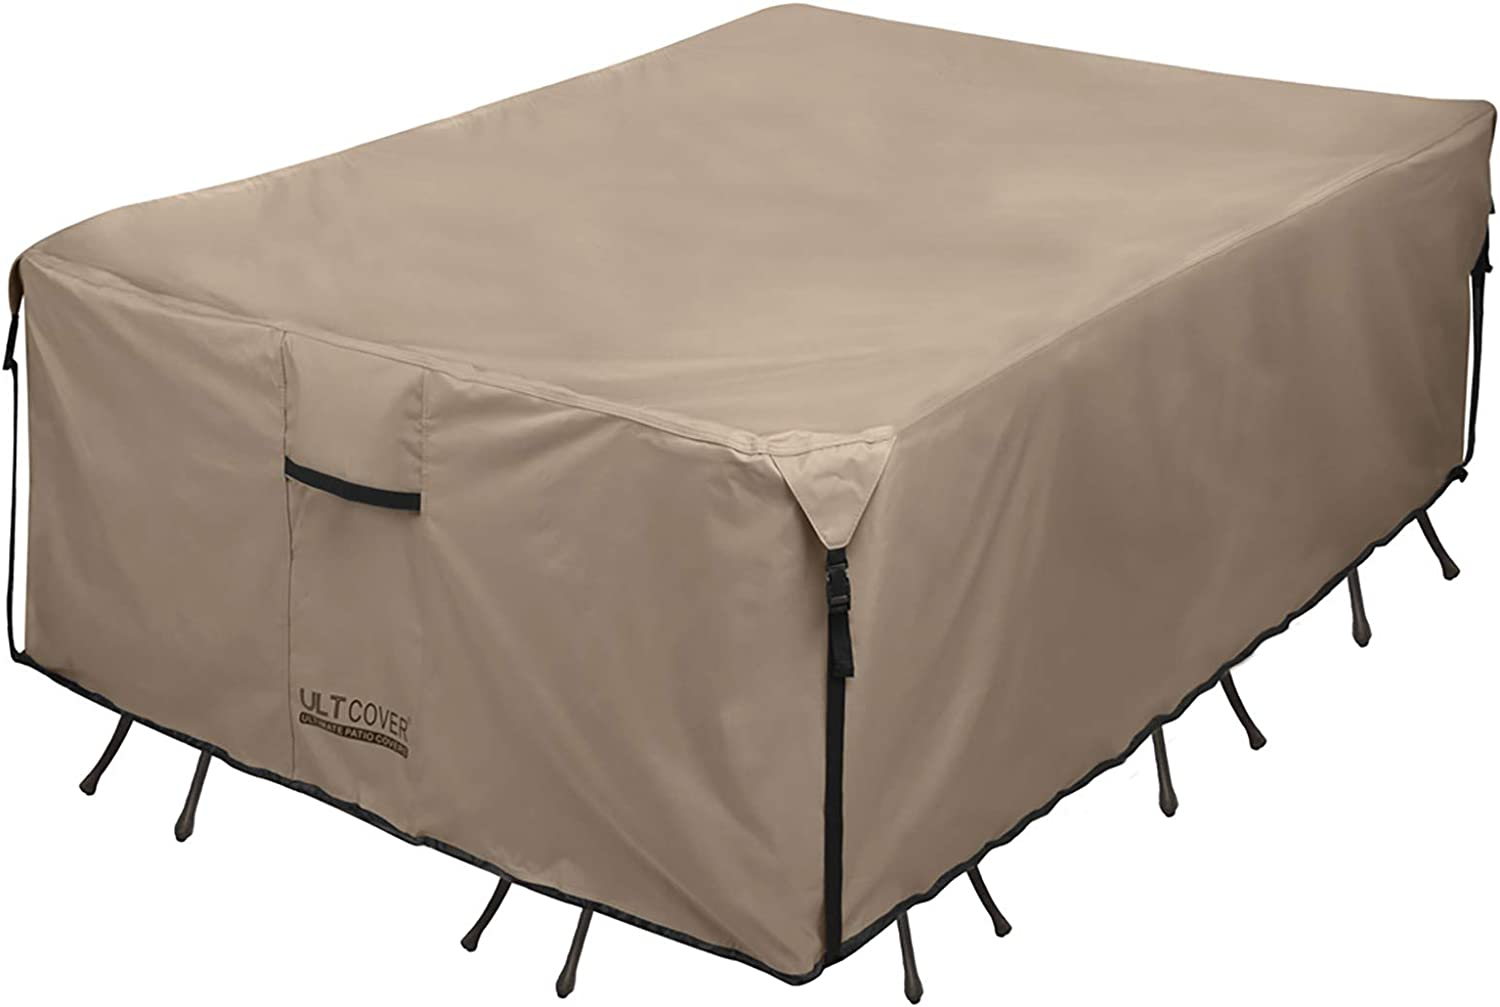 ULTCOVER Rectangular Patio Heavy Duty Table Cover - 600D Tough Canvas Waterproof Outdoor Dining Table and Chairs General Purpose Furniture Cover Size 88L x 62W x 28H inch : Garden & Outdoor